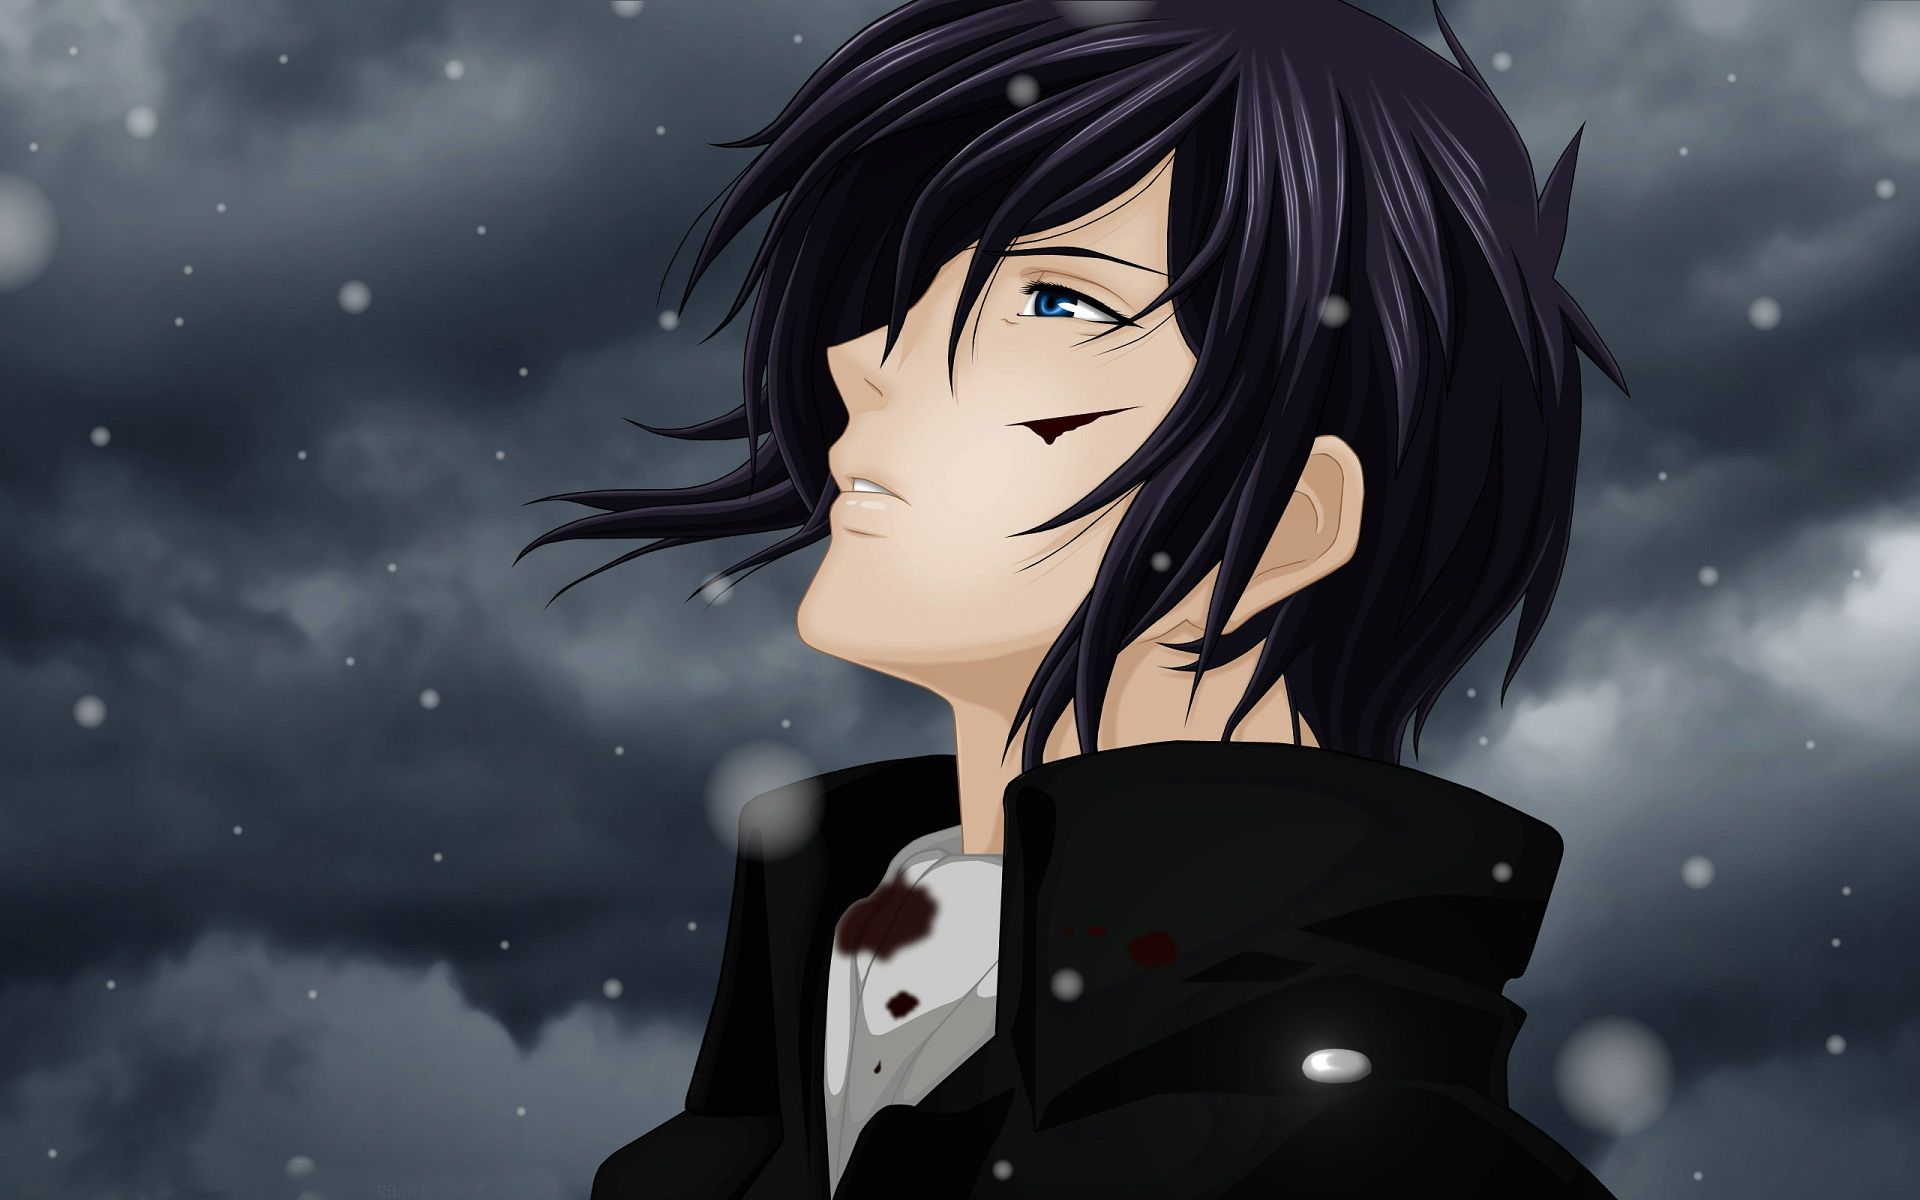 Hd sad boy anime snow handsome dark clouds wallpaper